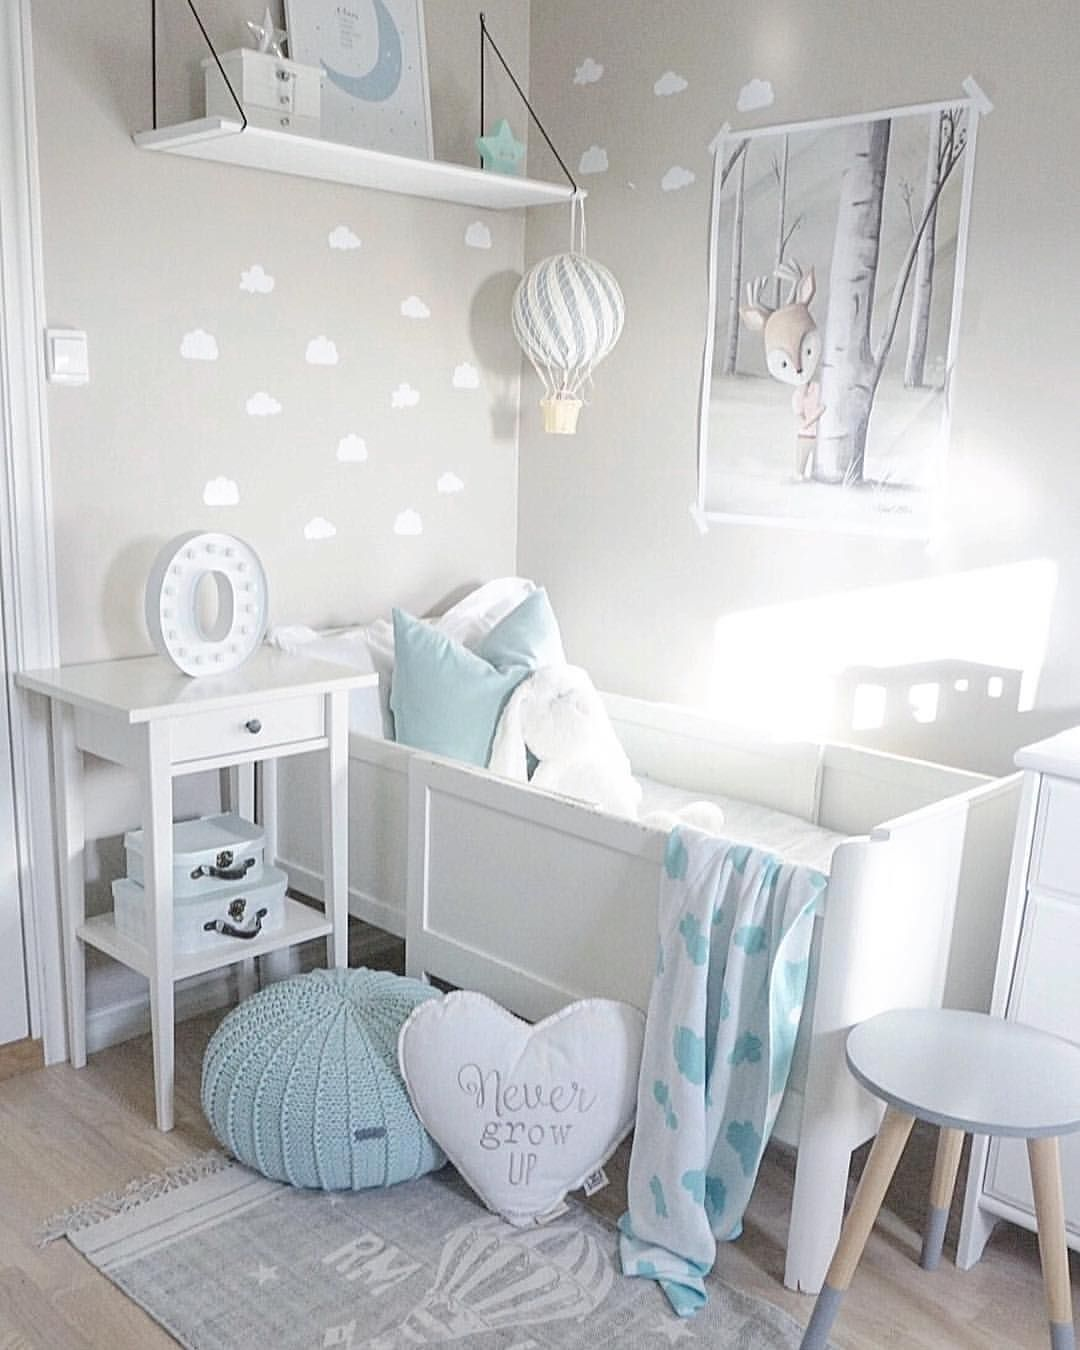 Instagram Babyzimmer Inspiration From Instagram - Light Grey And Blue Nursery